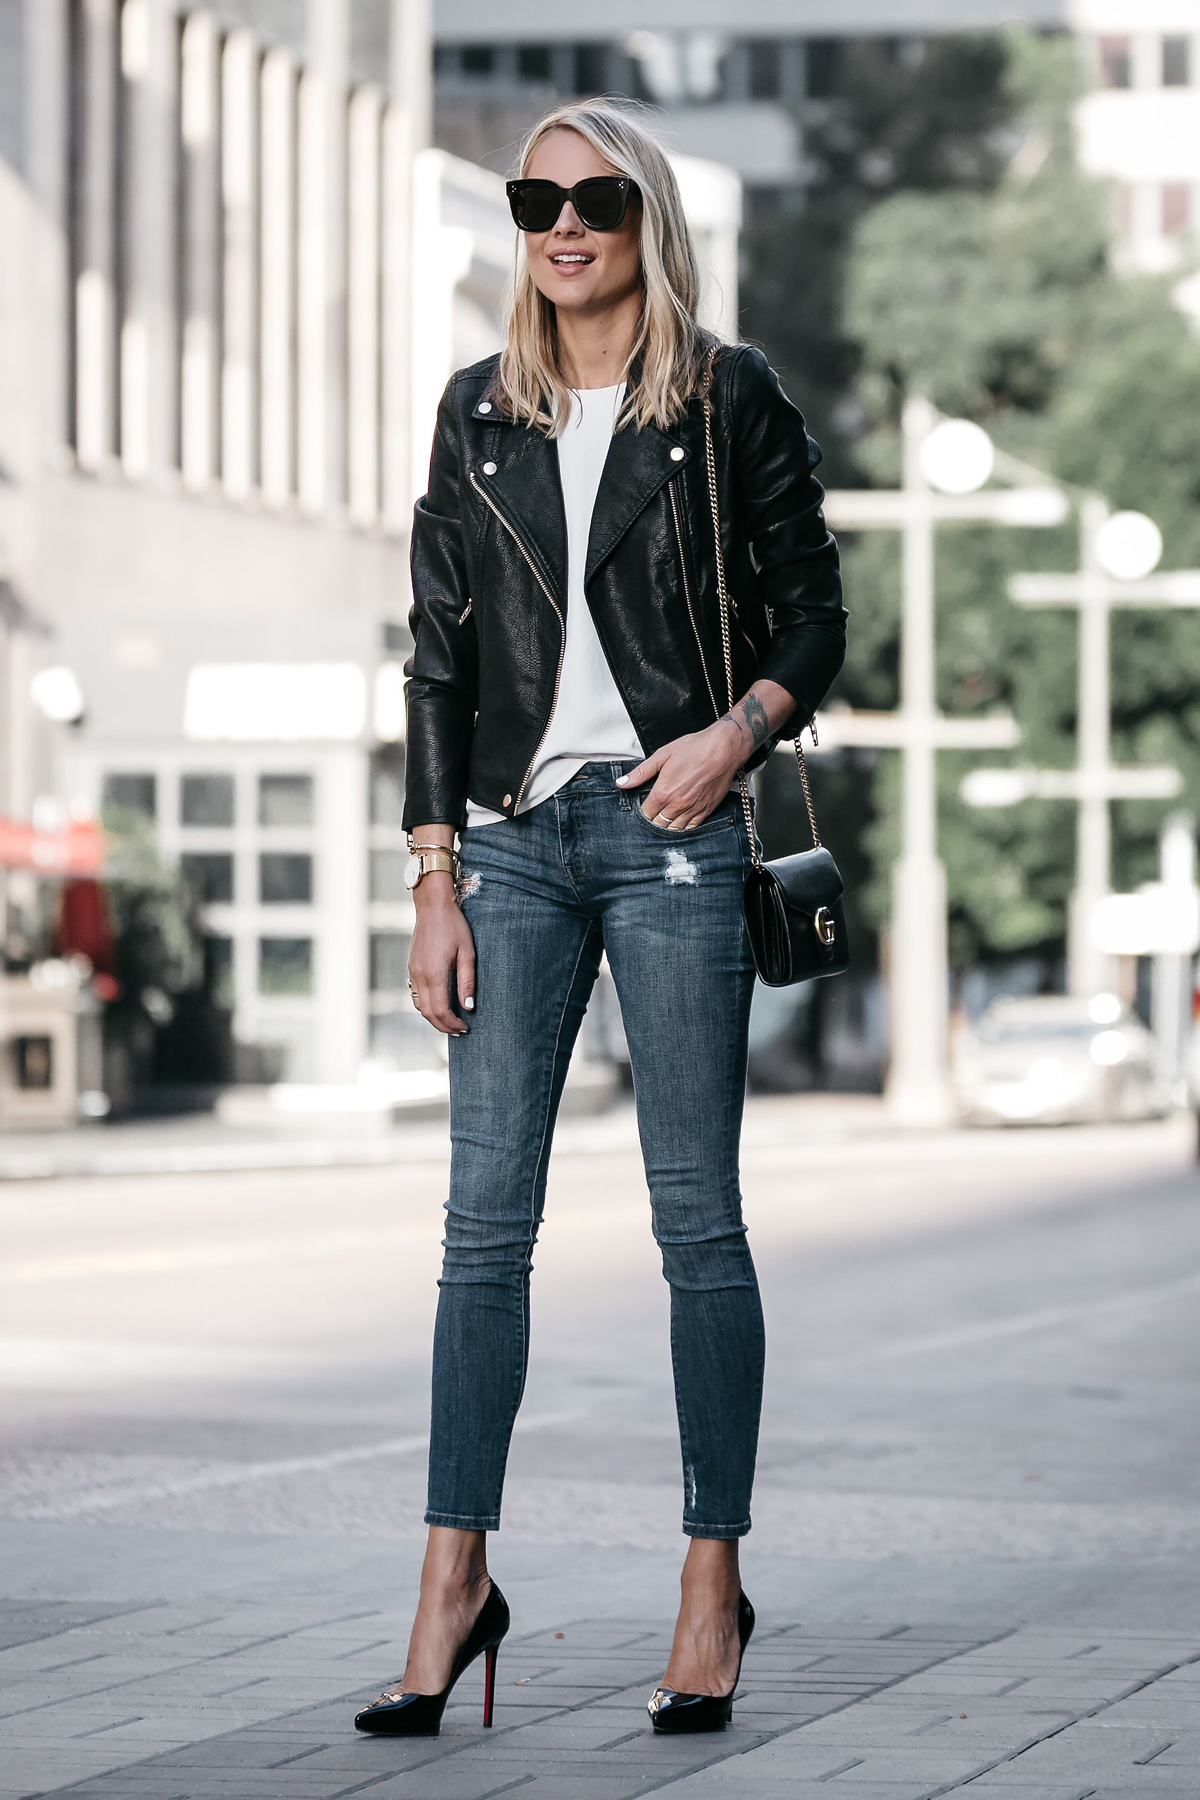 Blonde Woman Wearing Nordstrom Anniversary Sale Black Leather Moto Jacket Denim Skinny Jeans Christian Louboutin Black Pumps Fashion Jackson Dallas Blogger Fashion Blogger